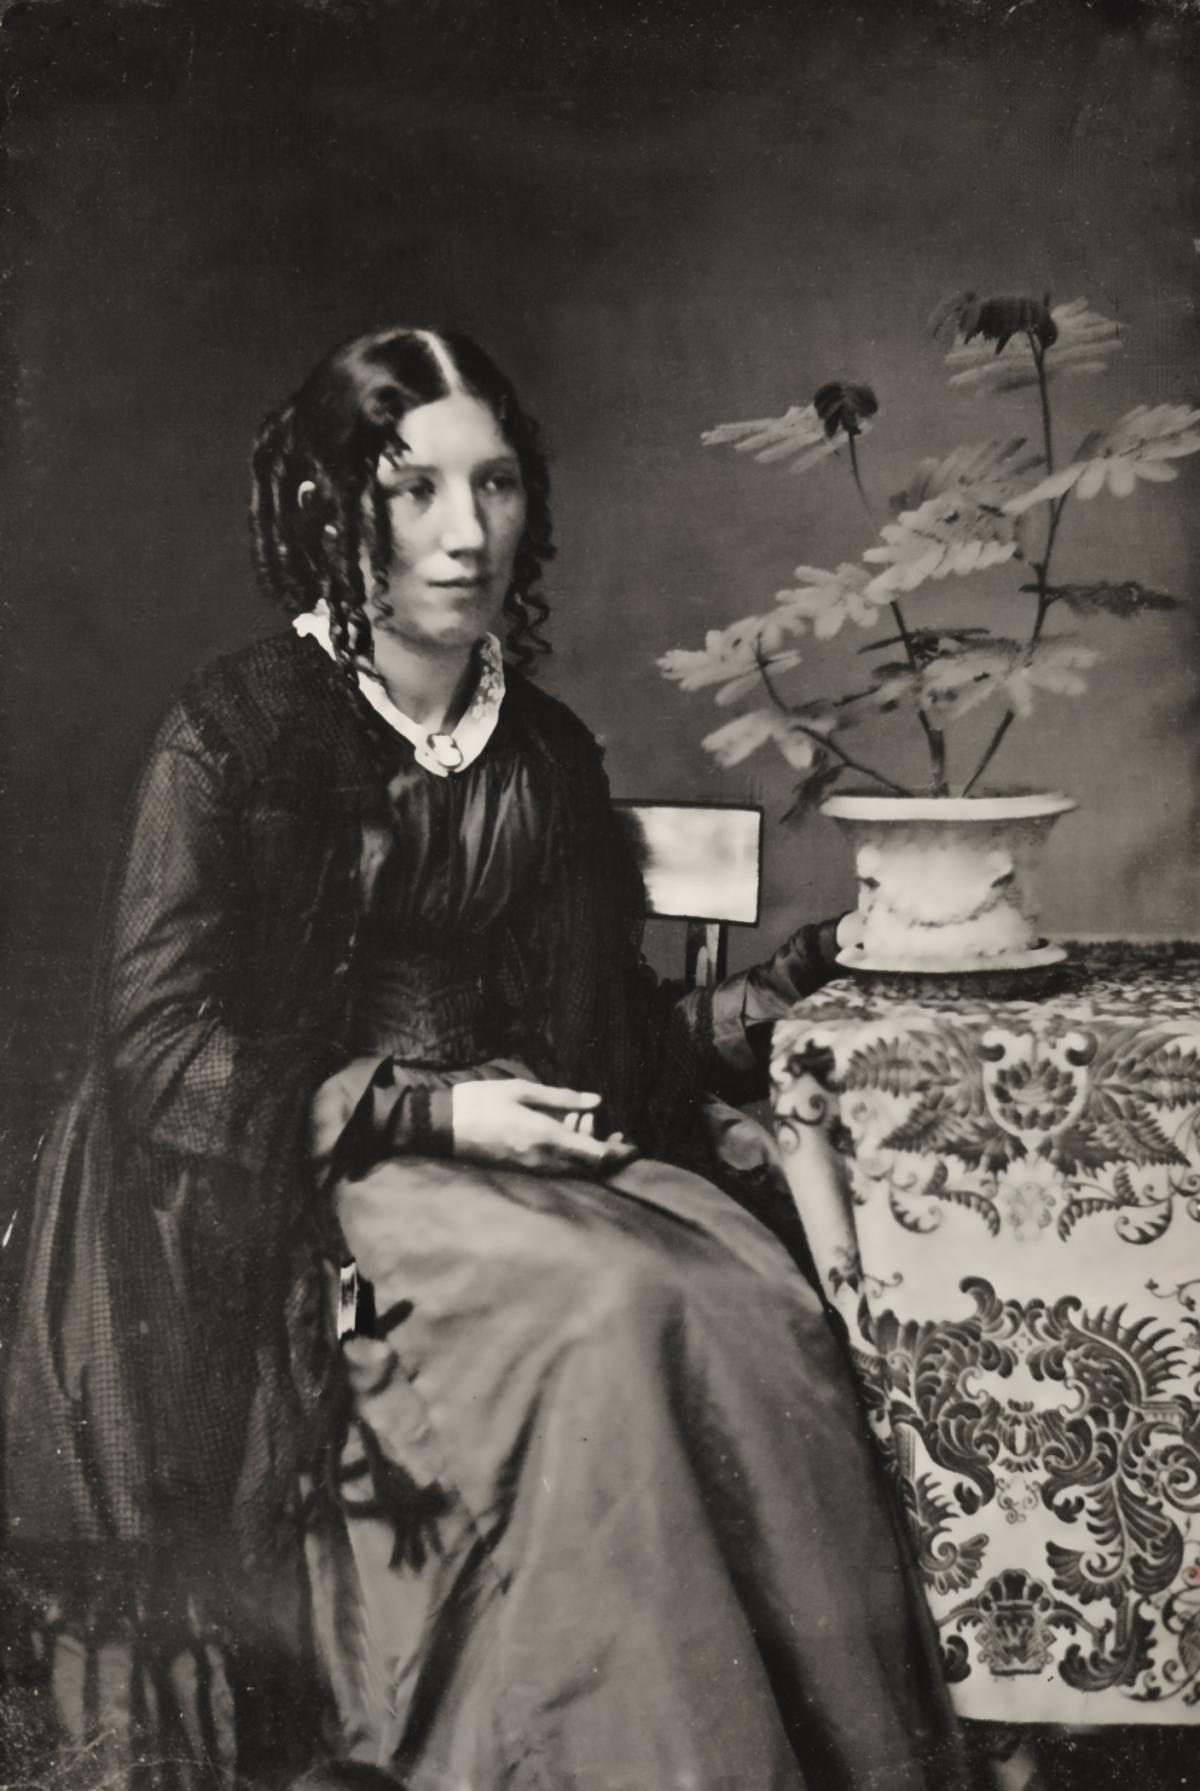 Stowe, with curled hair and wearing a dark shawl and dress, seated next to a table with a flower in a vase